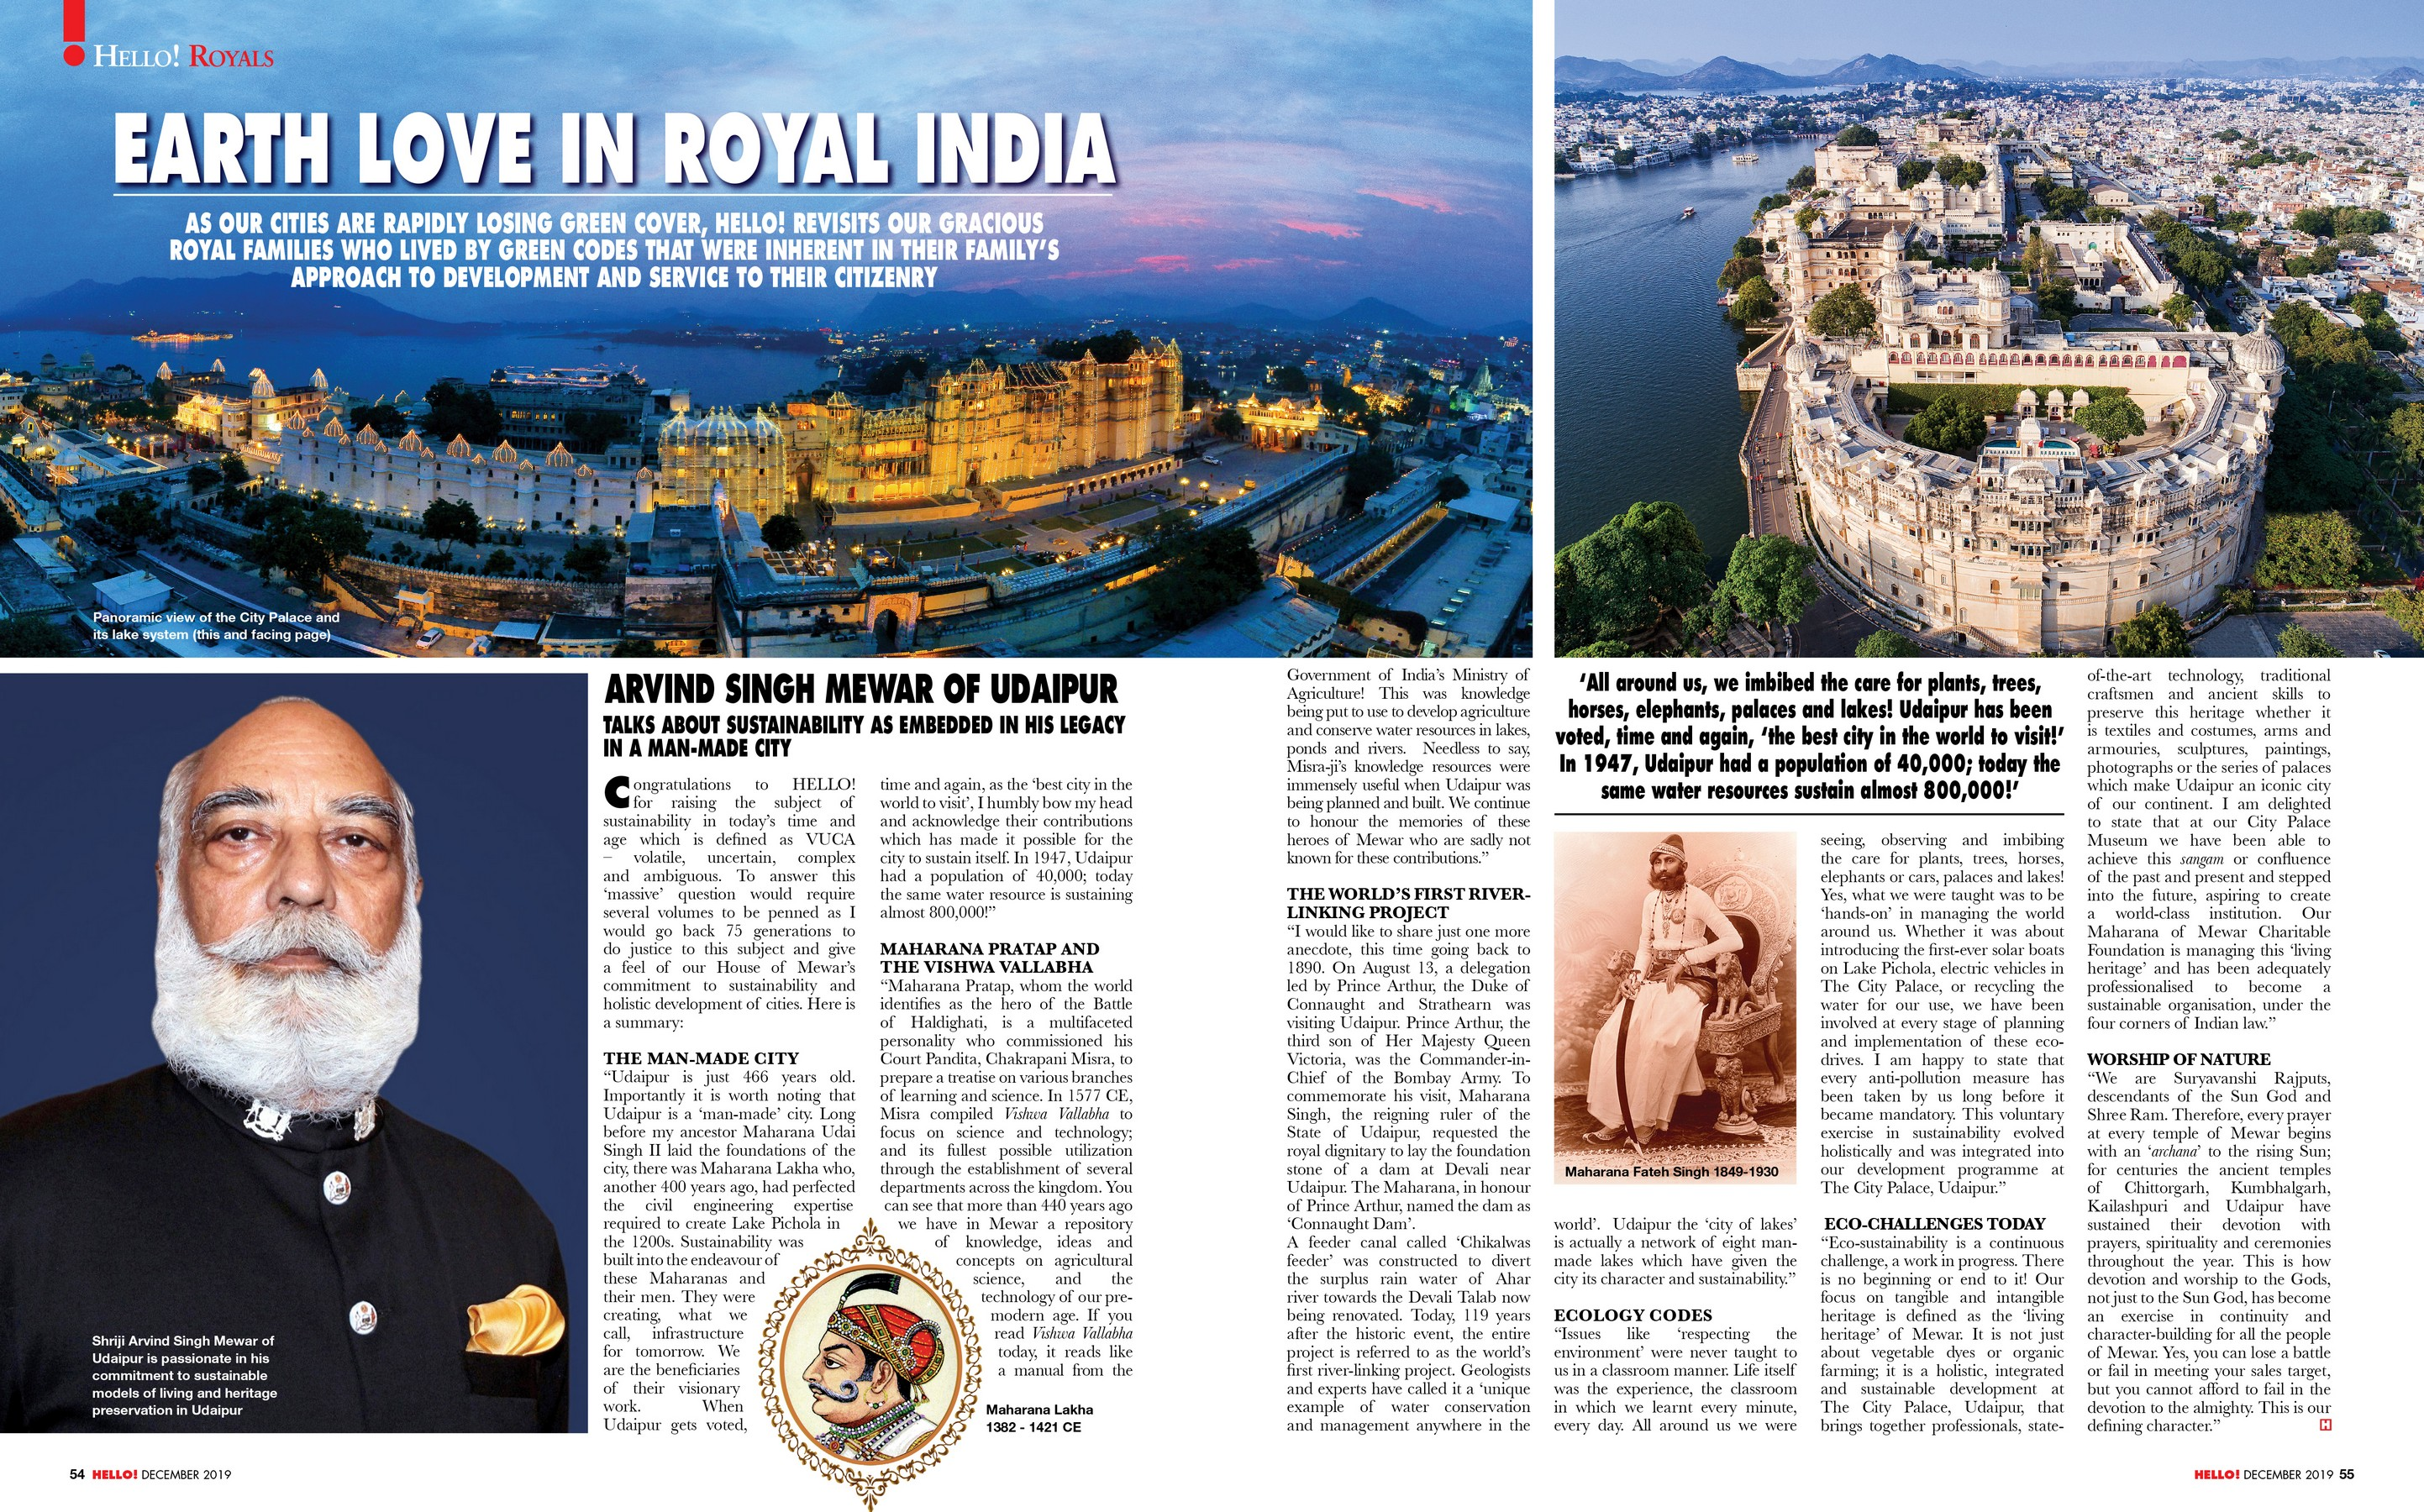 EARTH LOVE IN ROYAL INDIA